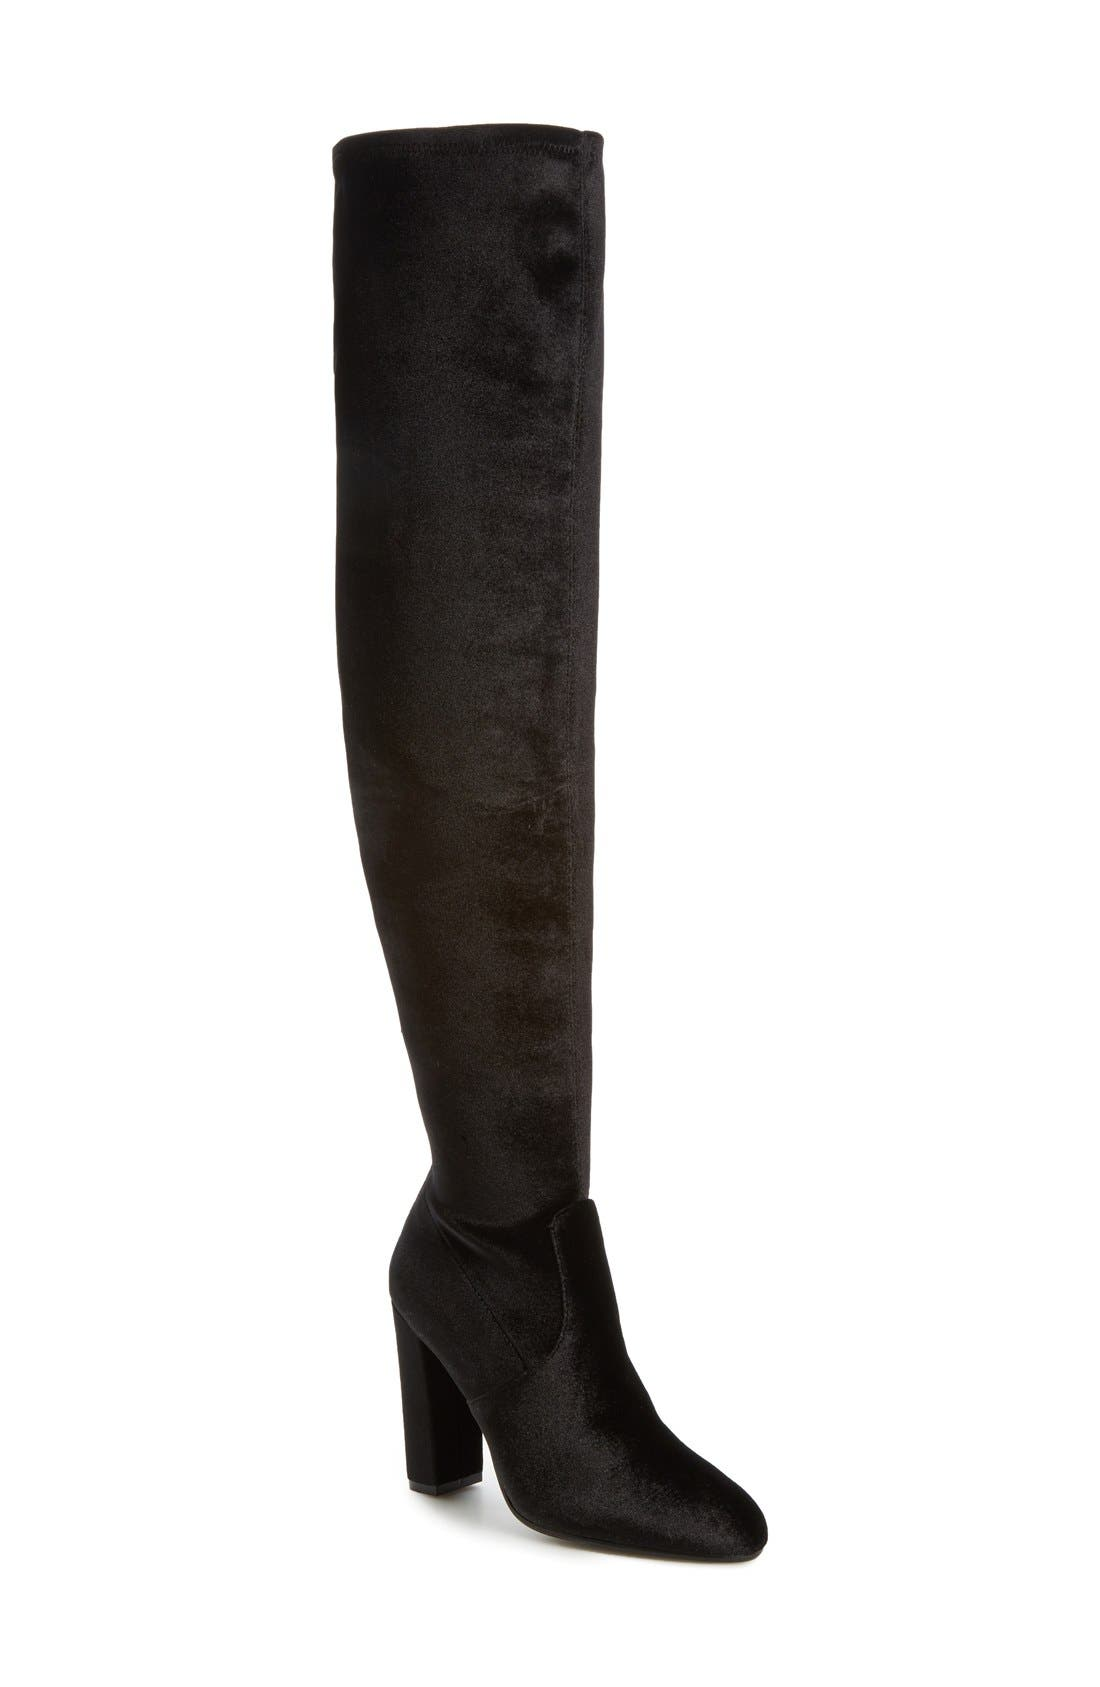 Emotionv Over the Knee Boot,                             Main thumbnail 1, color,                             001